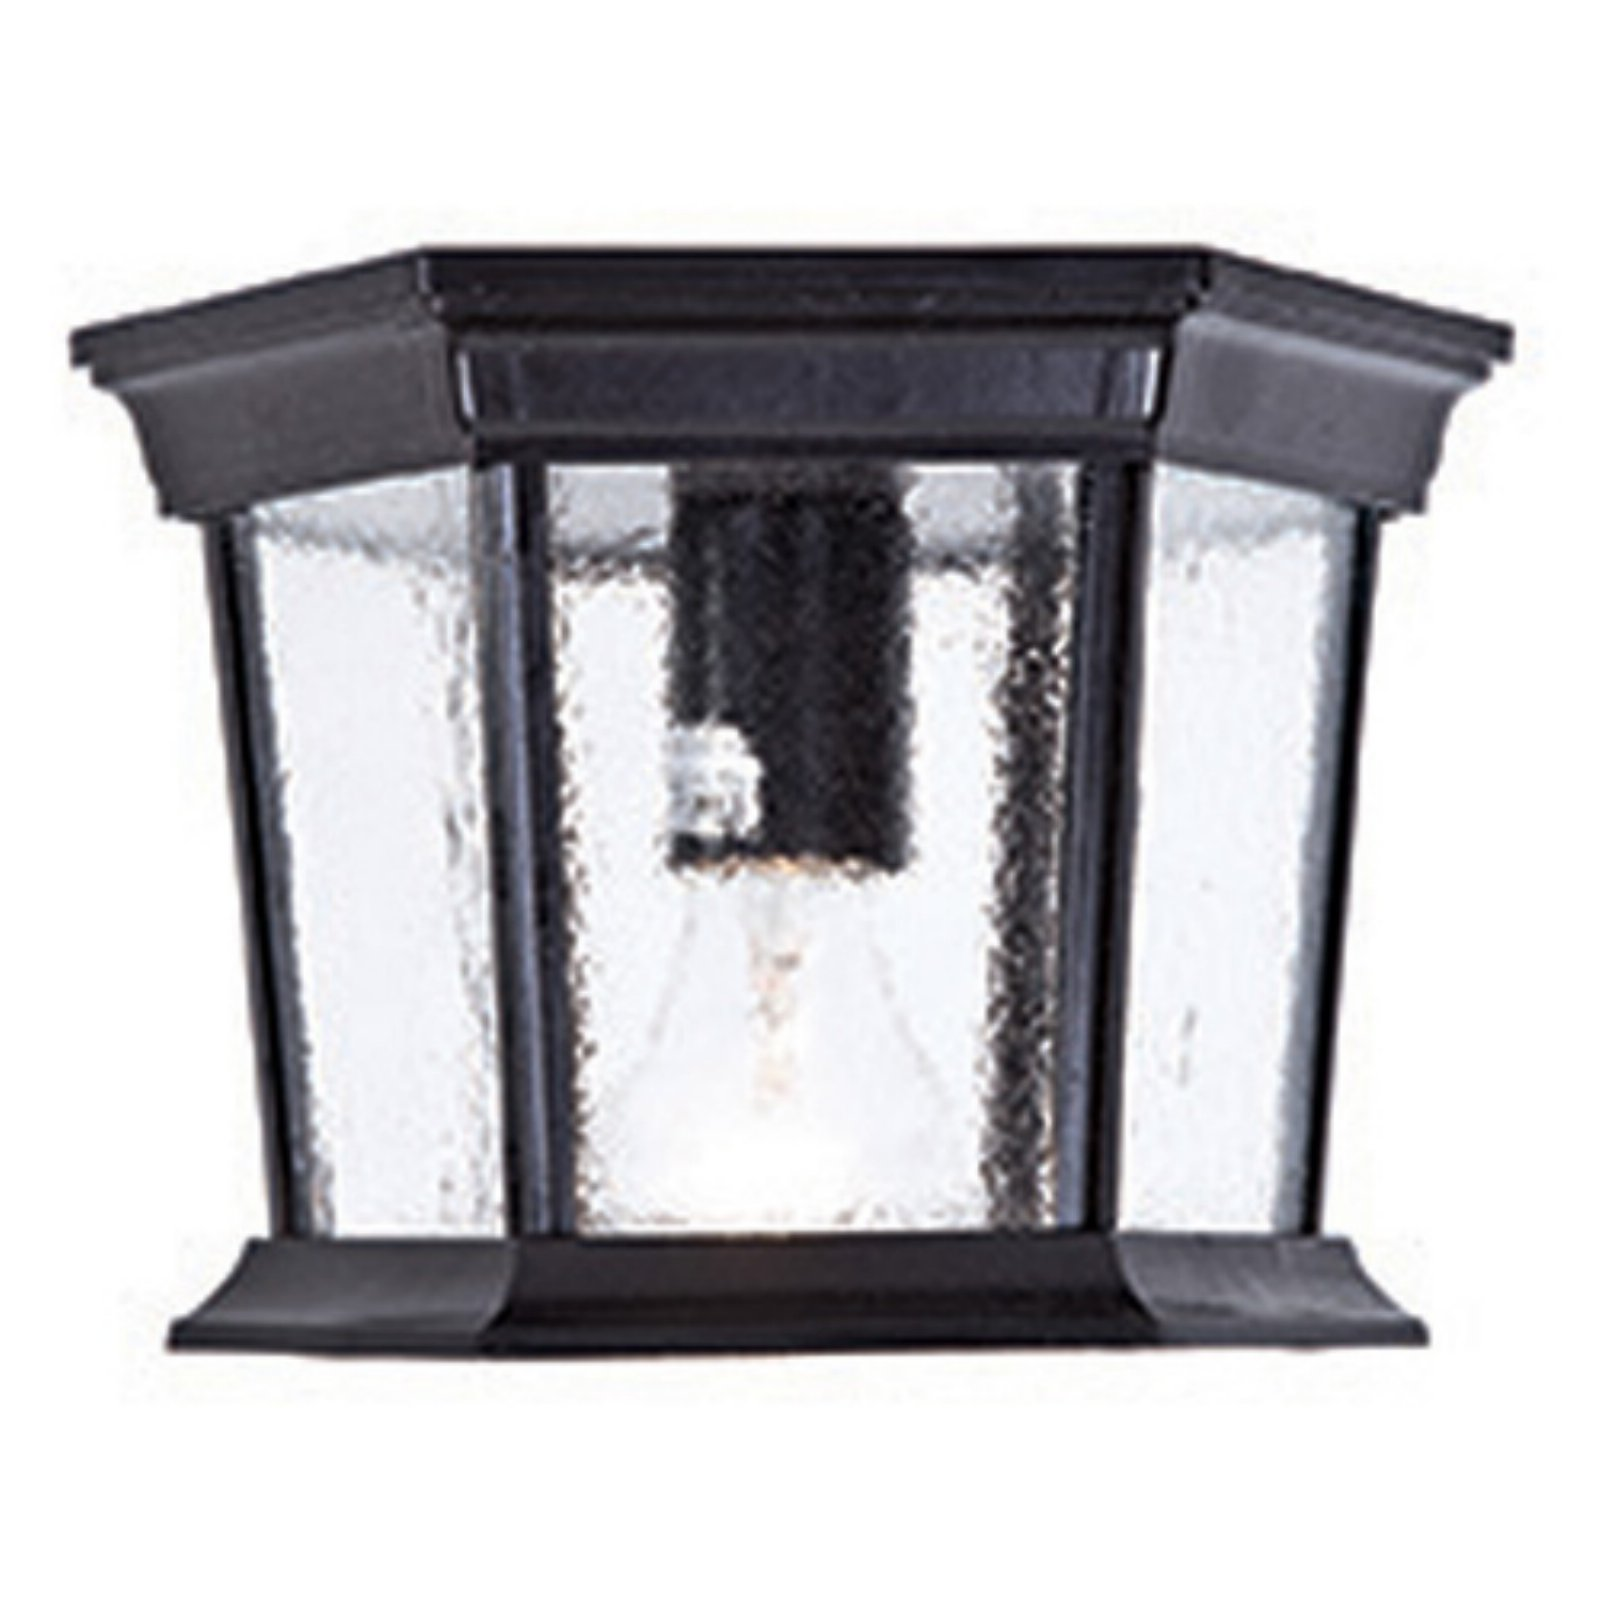 Acclaim Lighting Dover Outdoor Ceiling Mount Light Fixture